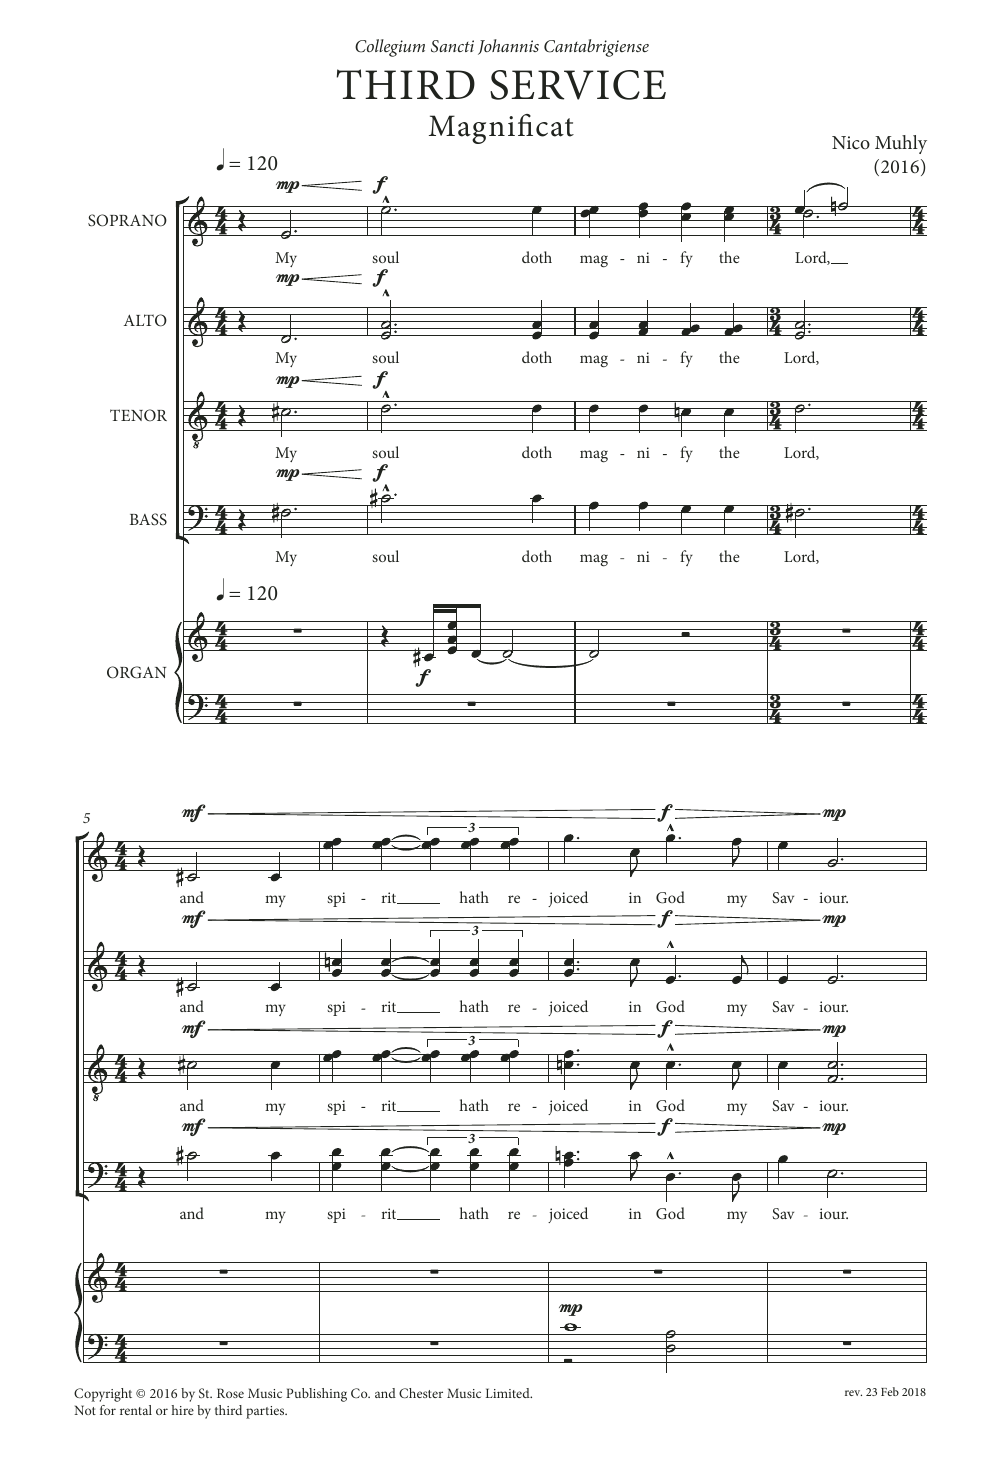 Third Service (Magnificat and Nunc Dimittis) Sheet Music